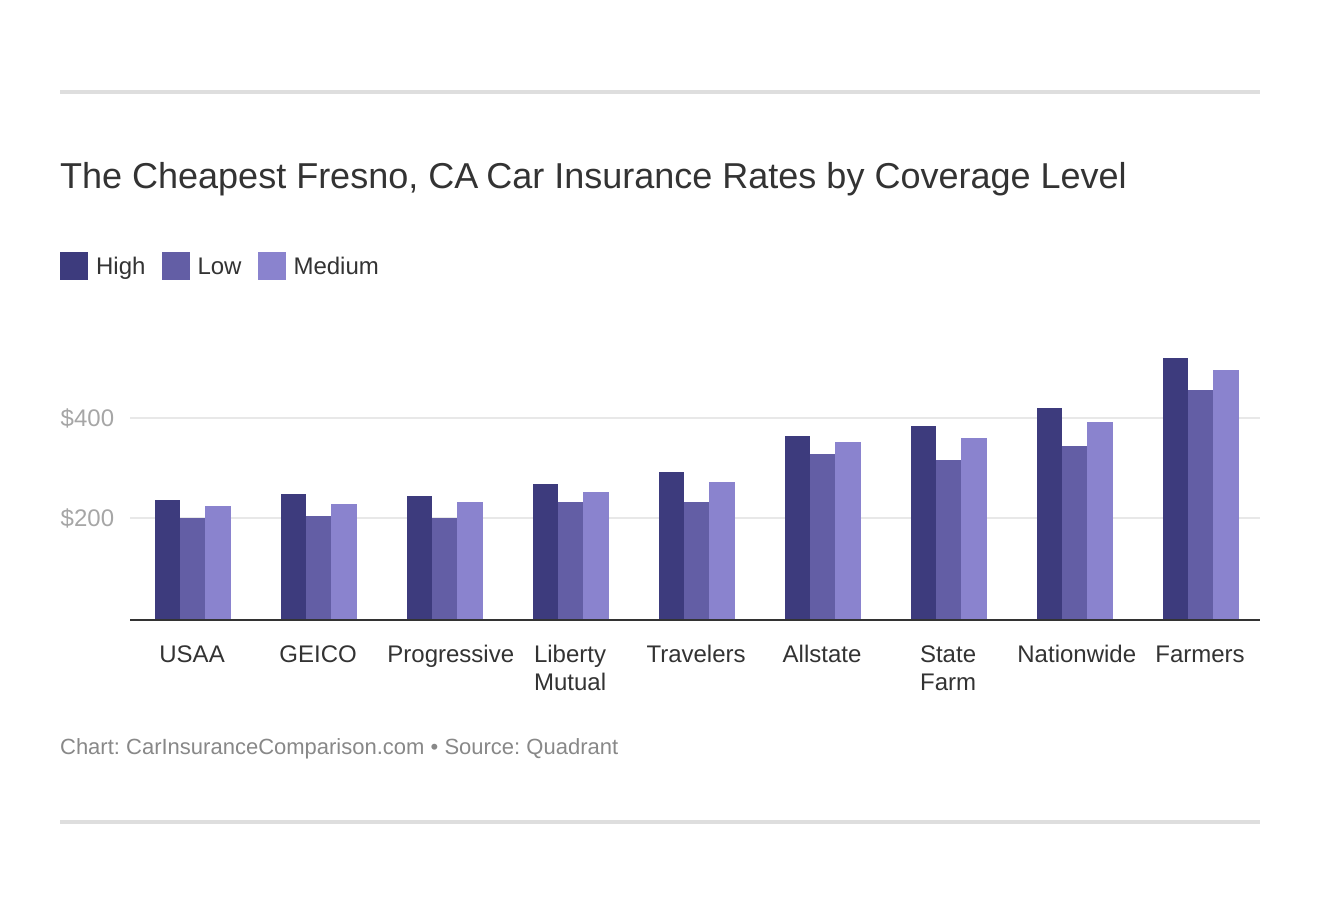 The Cheapest Fresno, CA Car Insurance Rates by Coverage Level